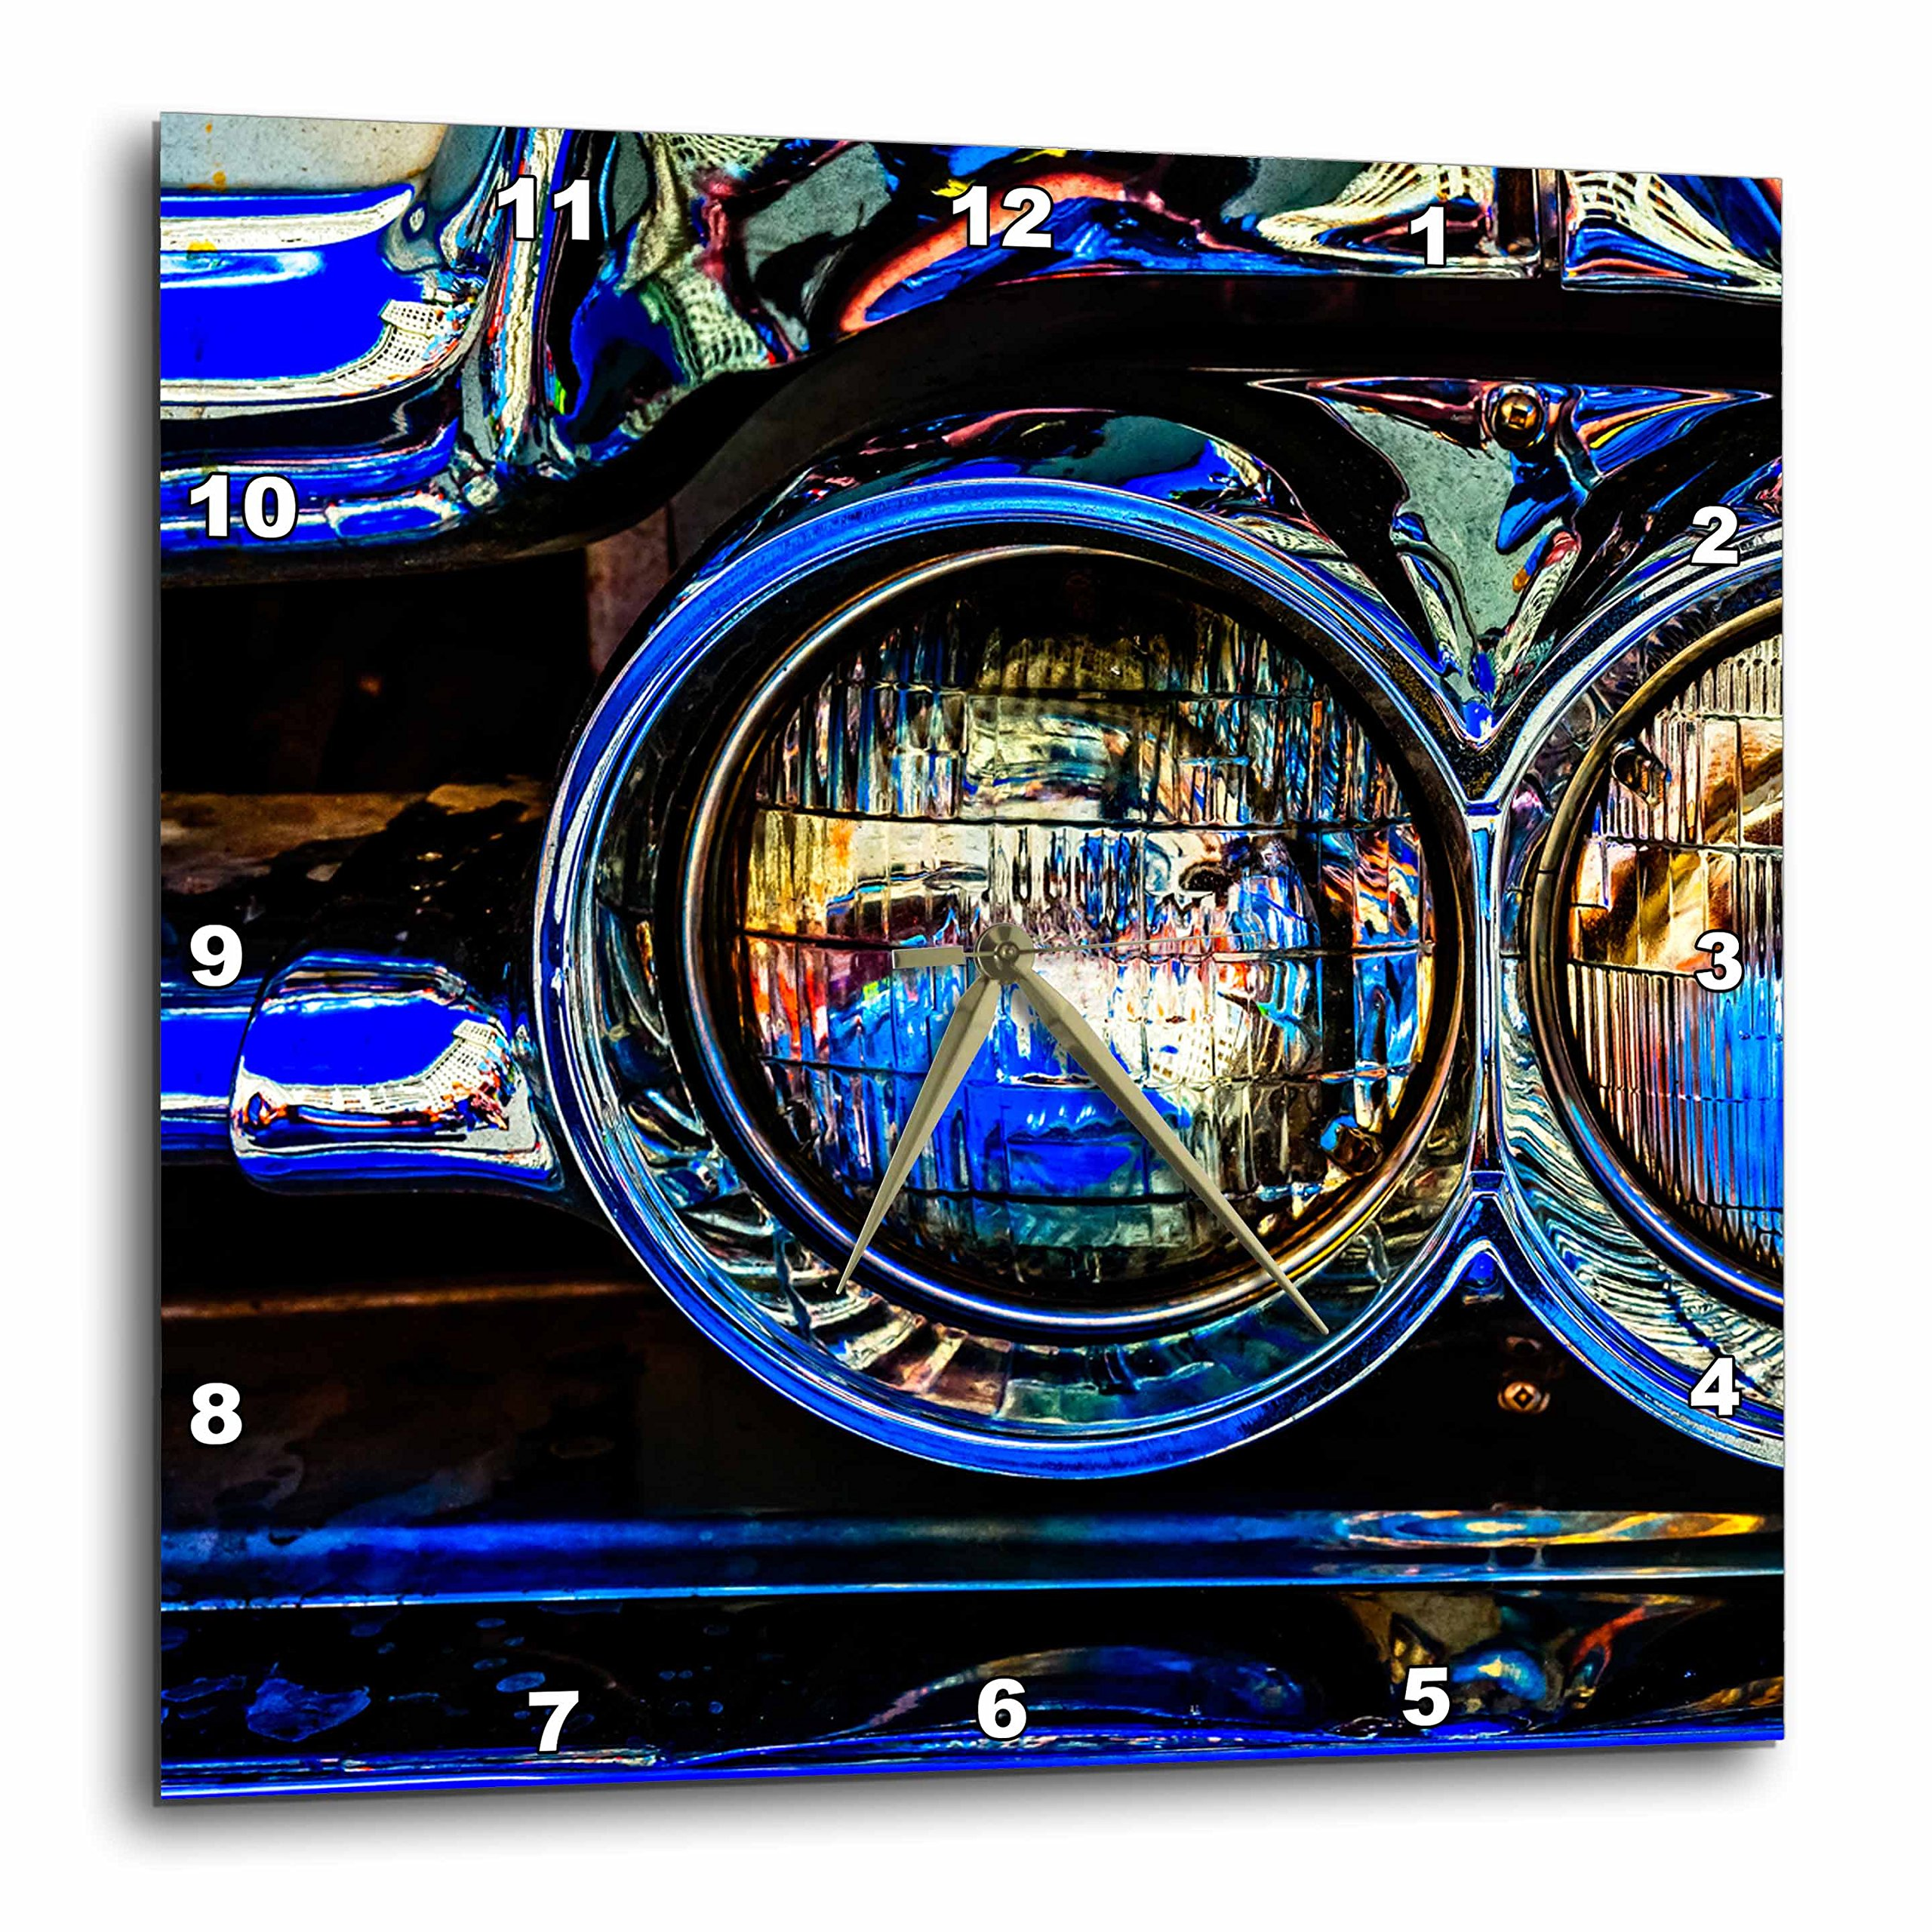 3dRose Alexis Photography - Transport Road - Headlights of a retro luxury car. Play of lights, shadows reflections - 15x15 Wall Clock (dpp_271954_3)